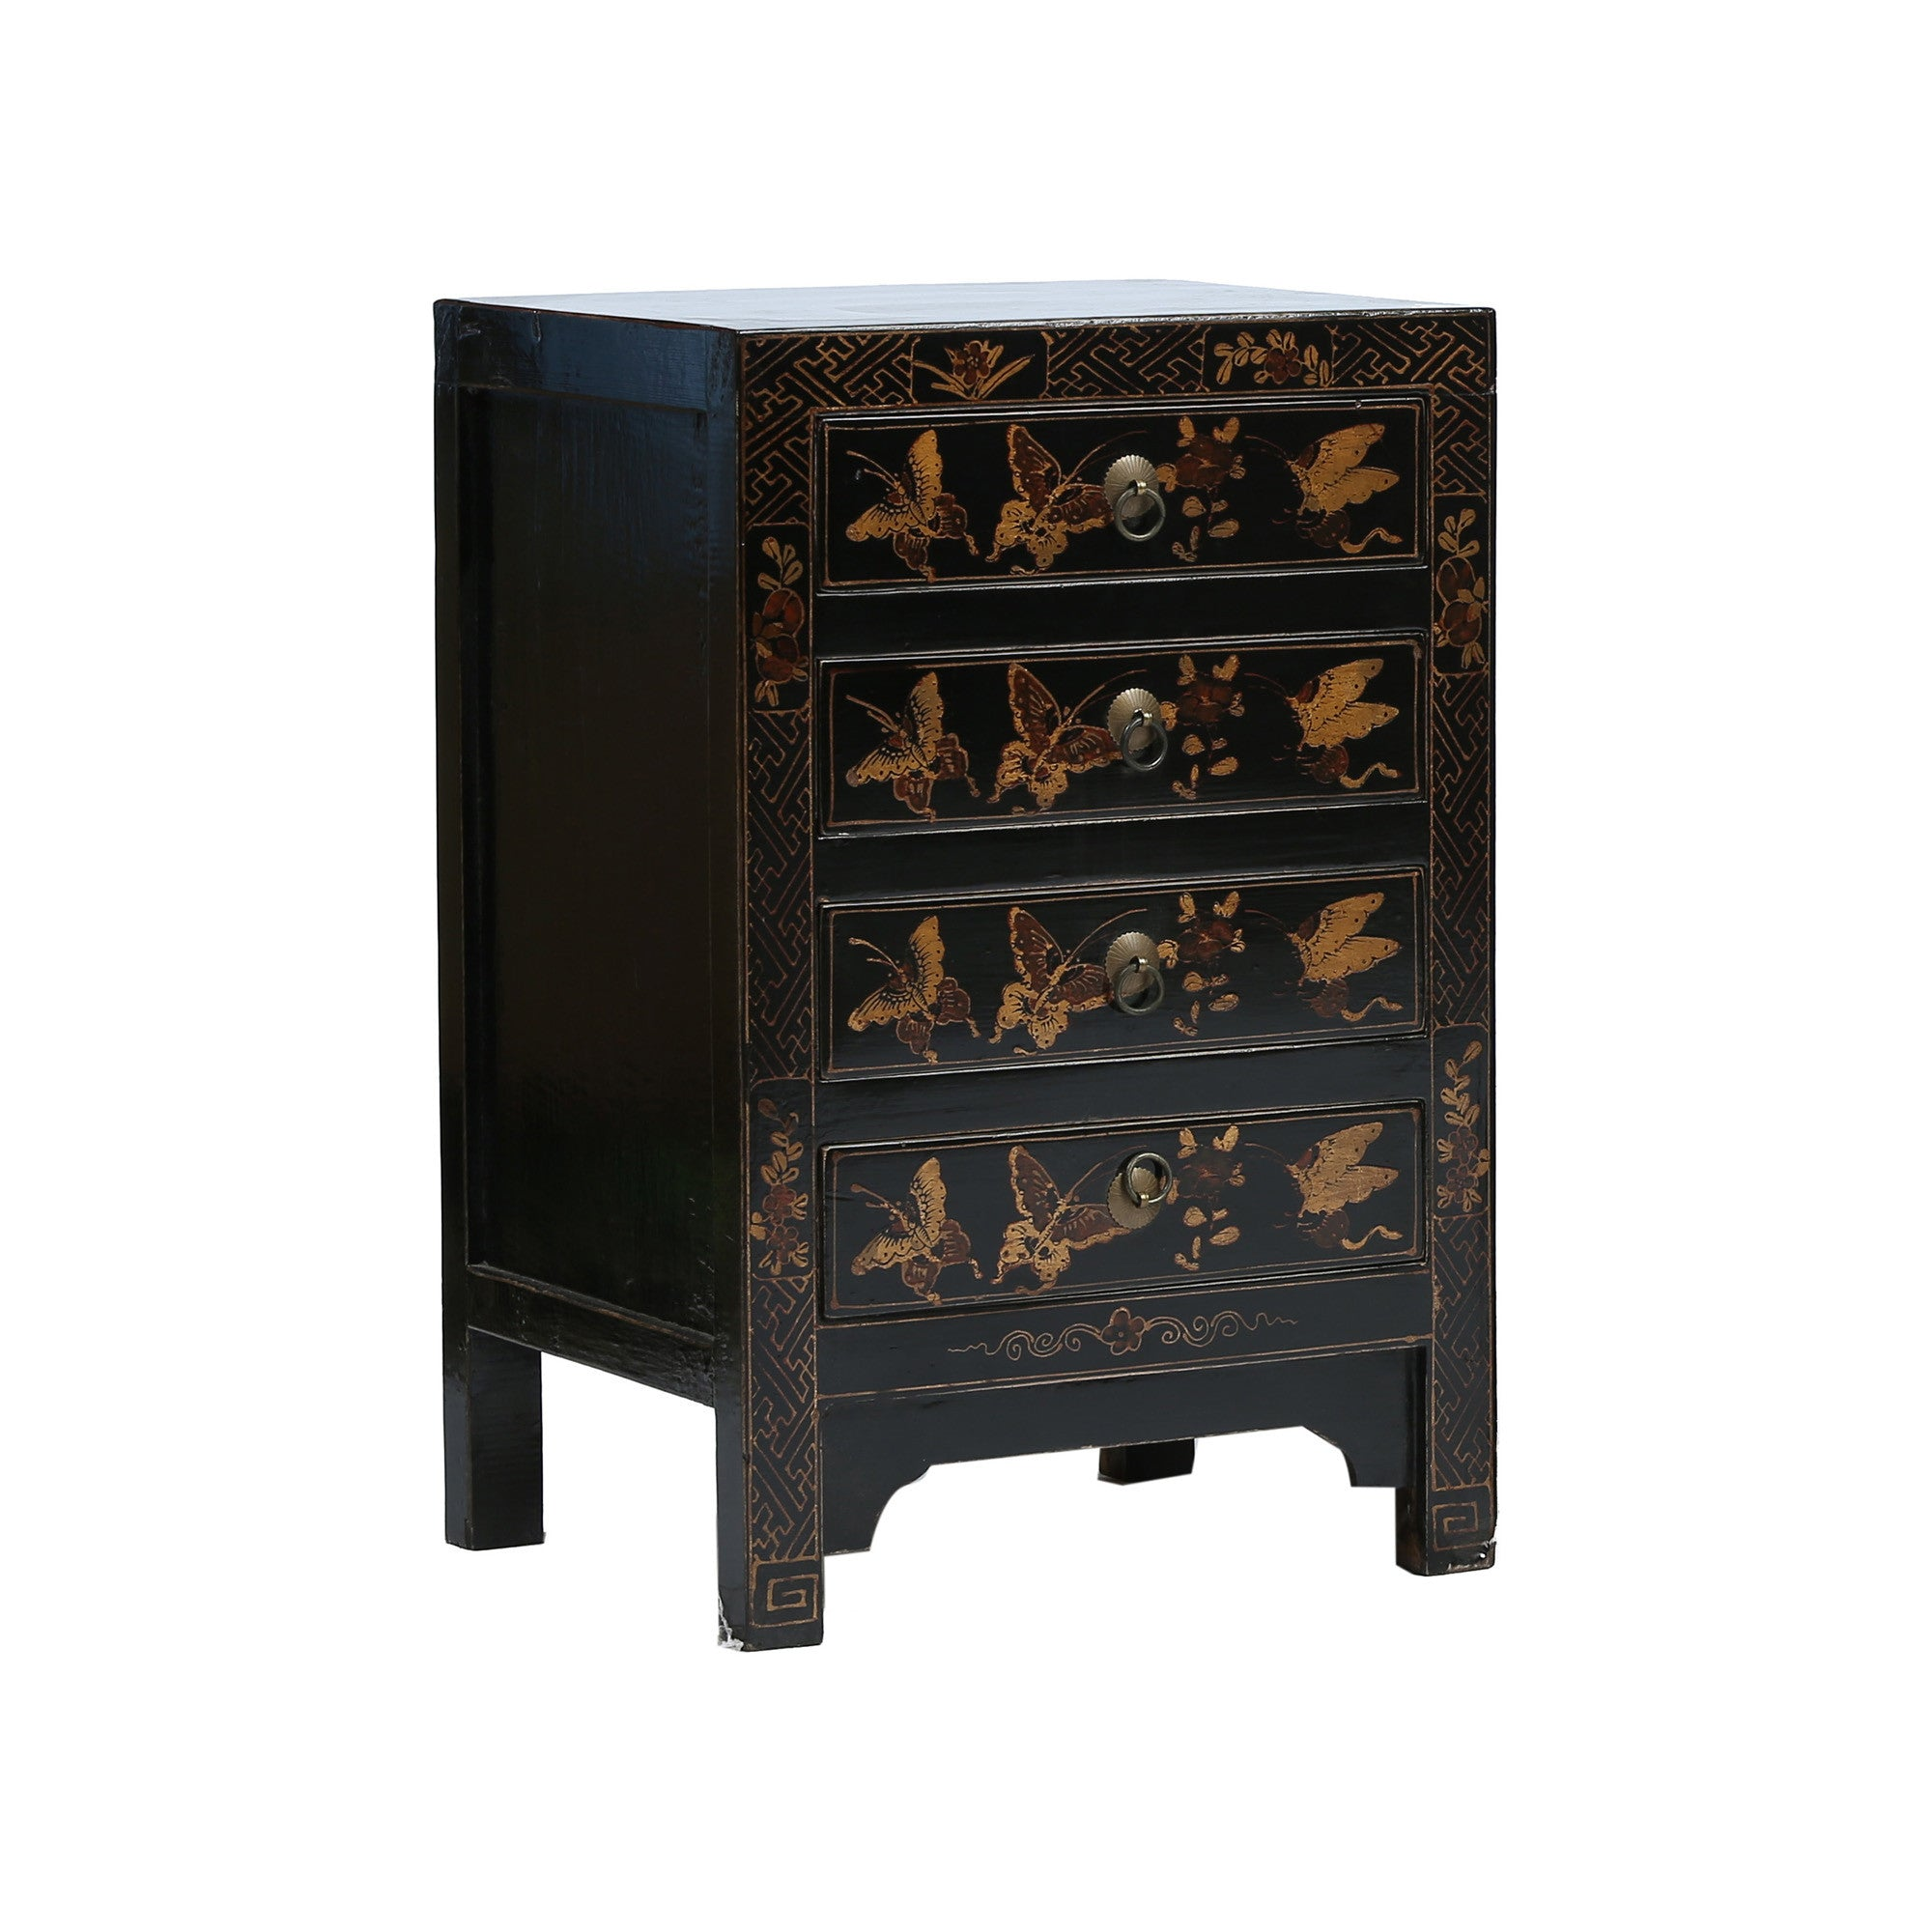 Black and Gold Bedside Chest of Drawers side view